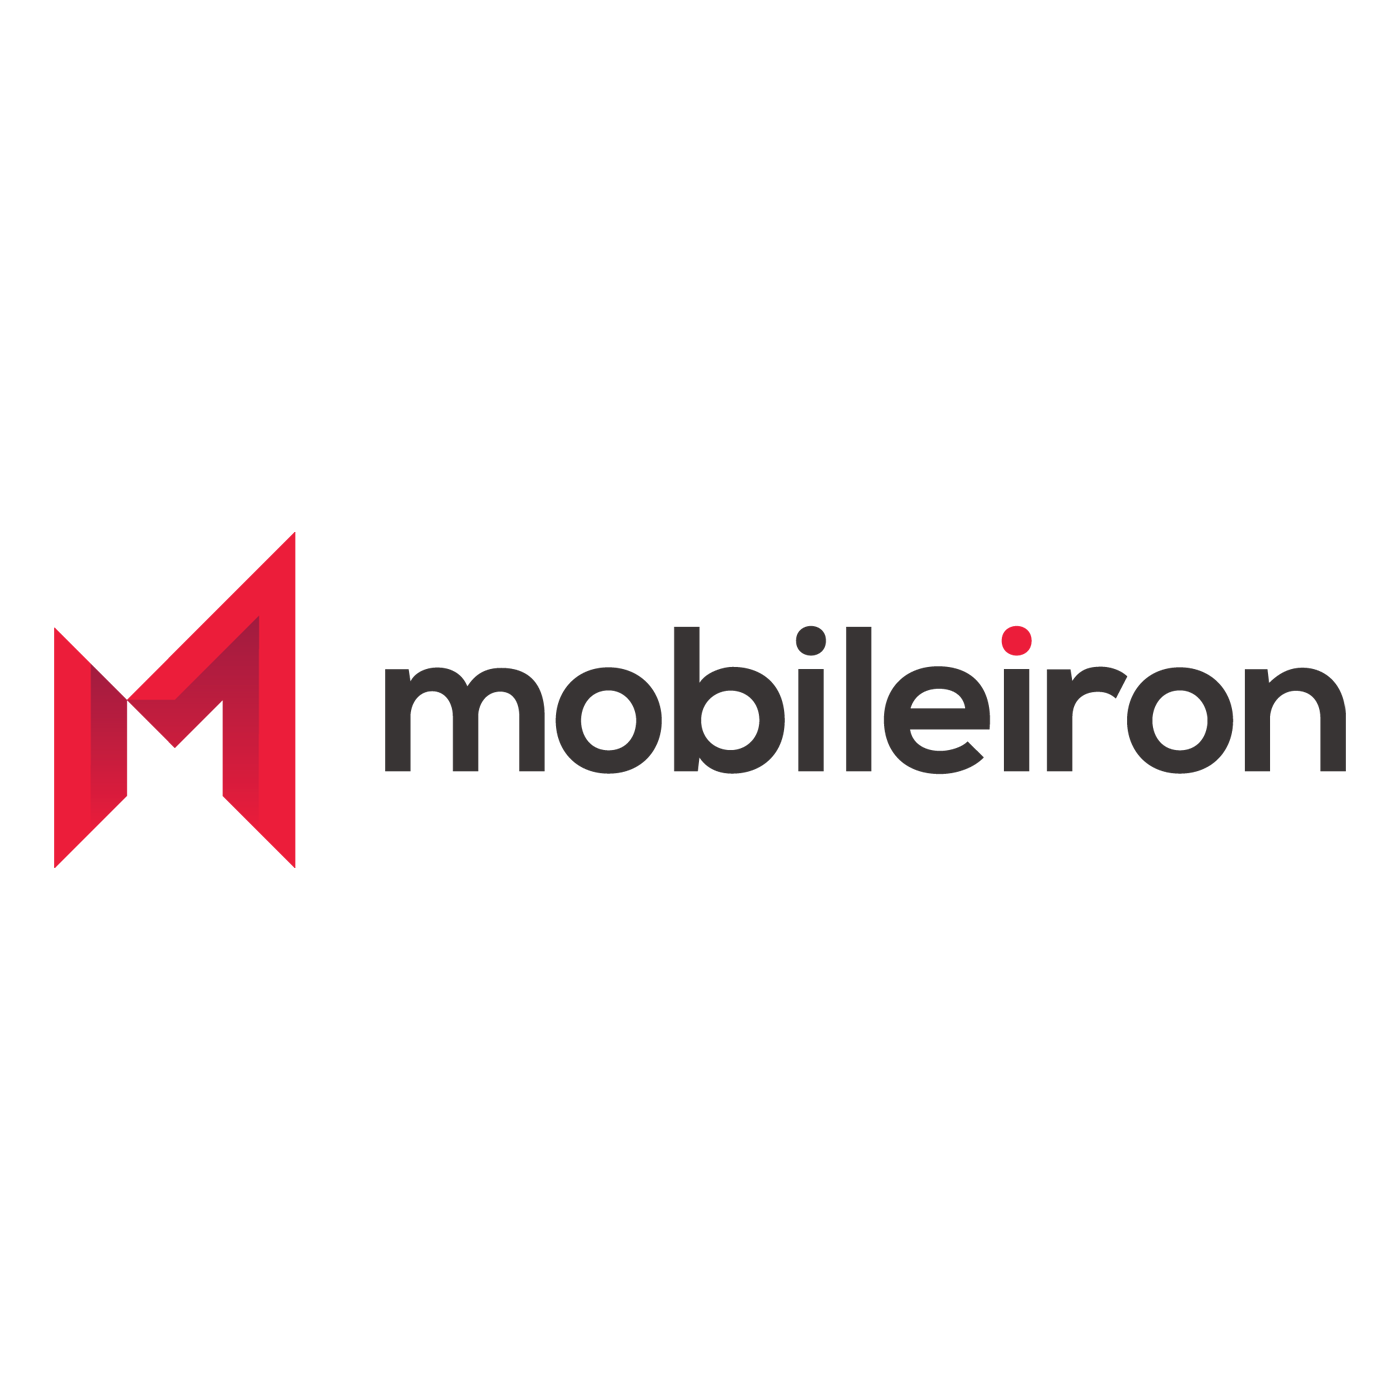 Ivanti MobileIron Explained: A Guide to Understanding the Licensing Models and Features